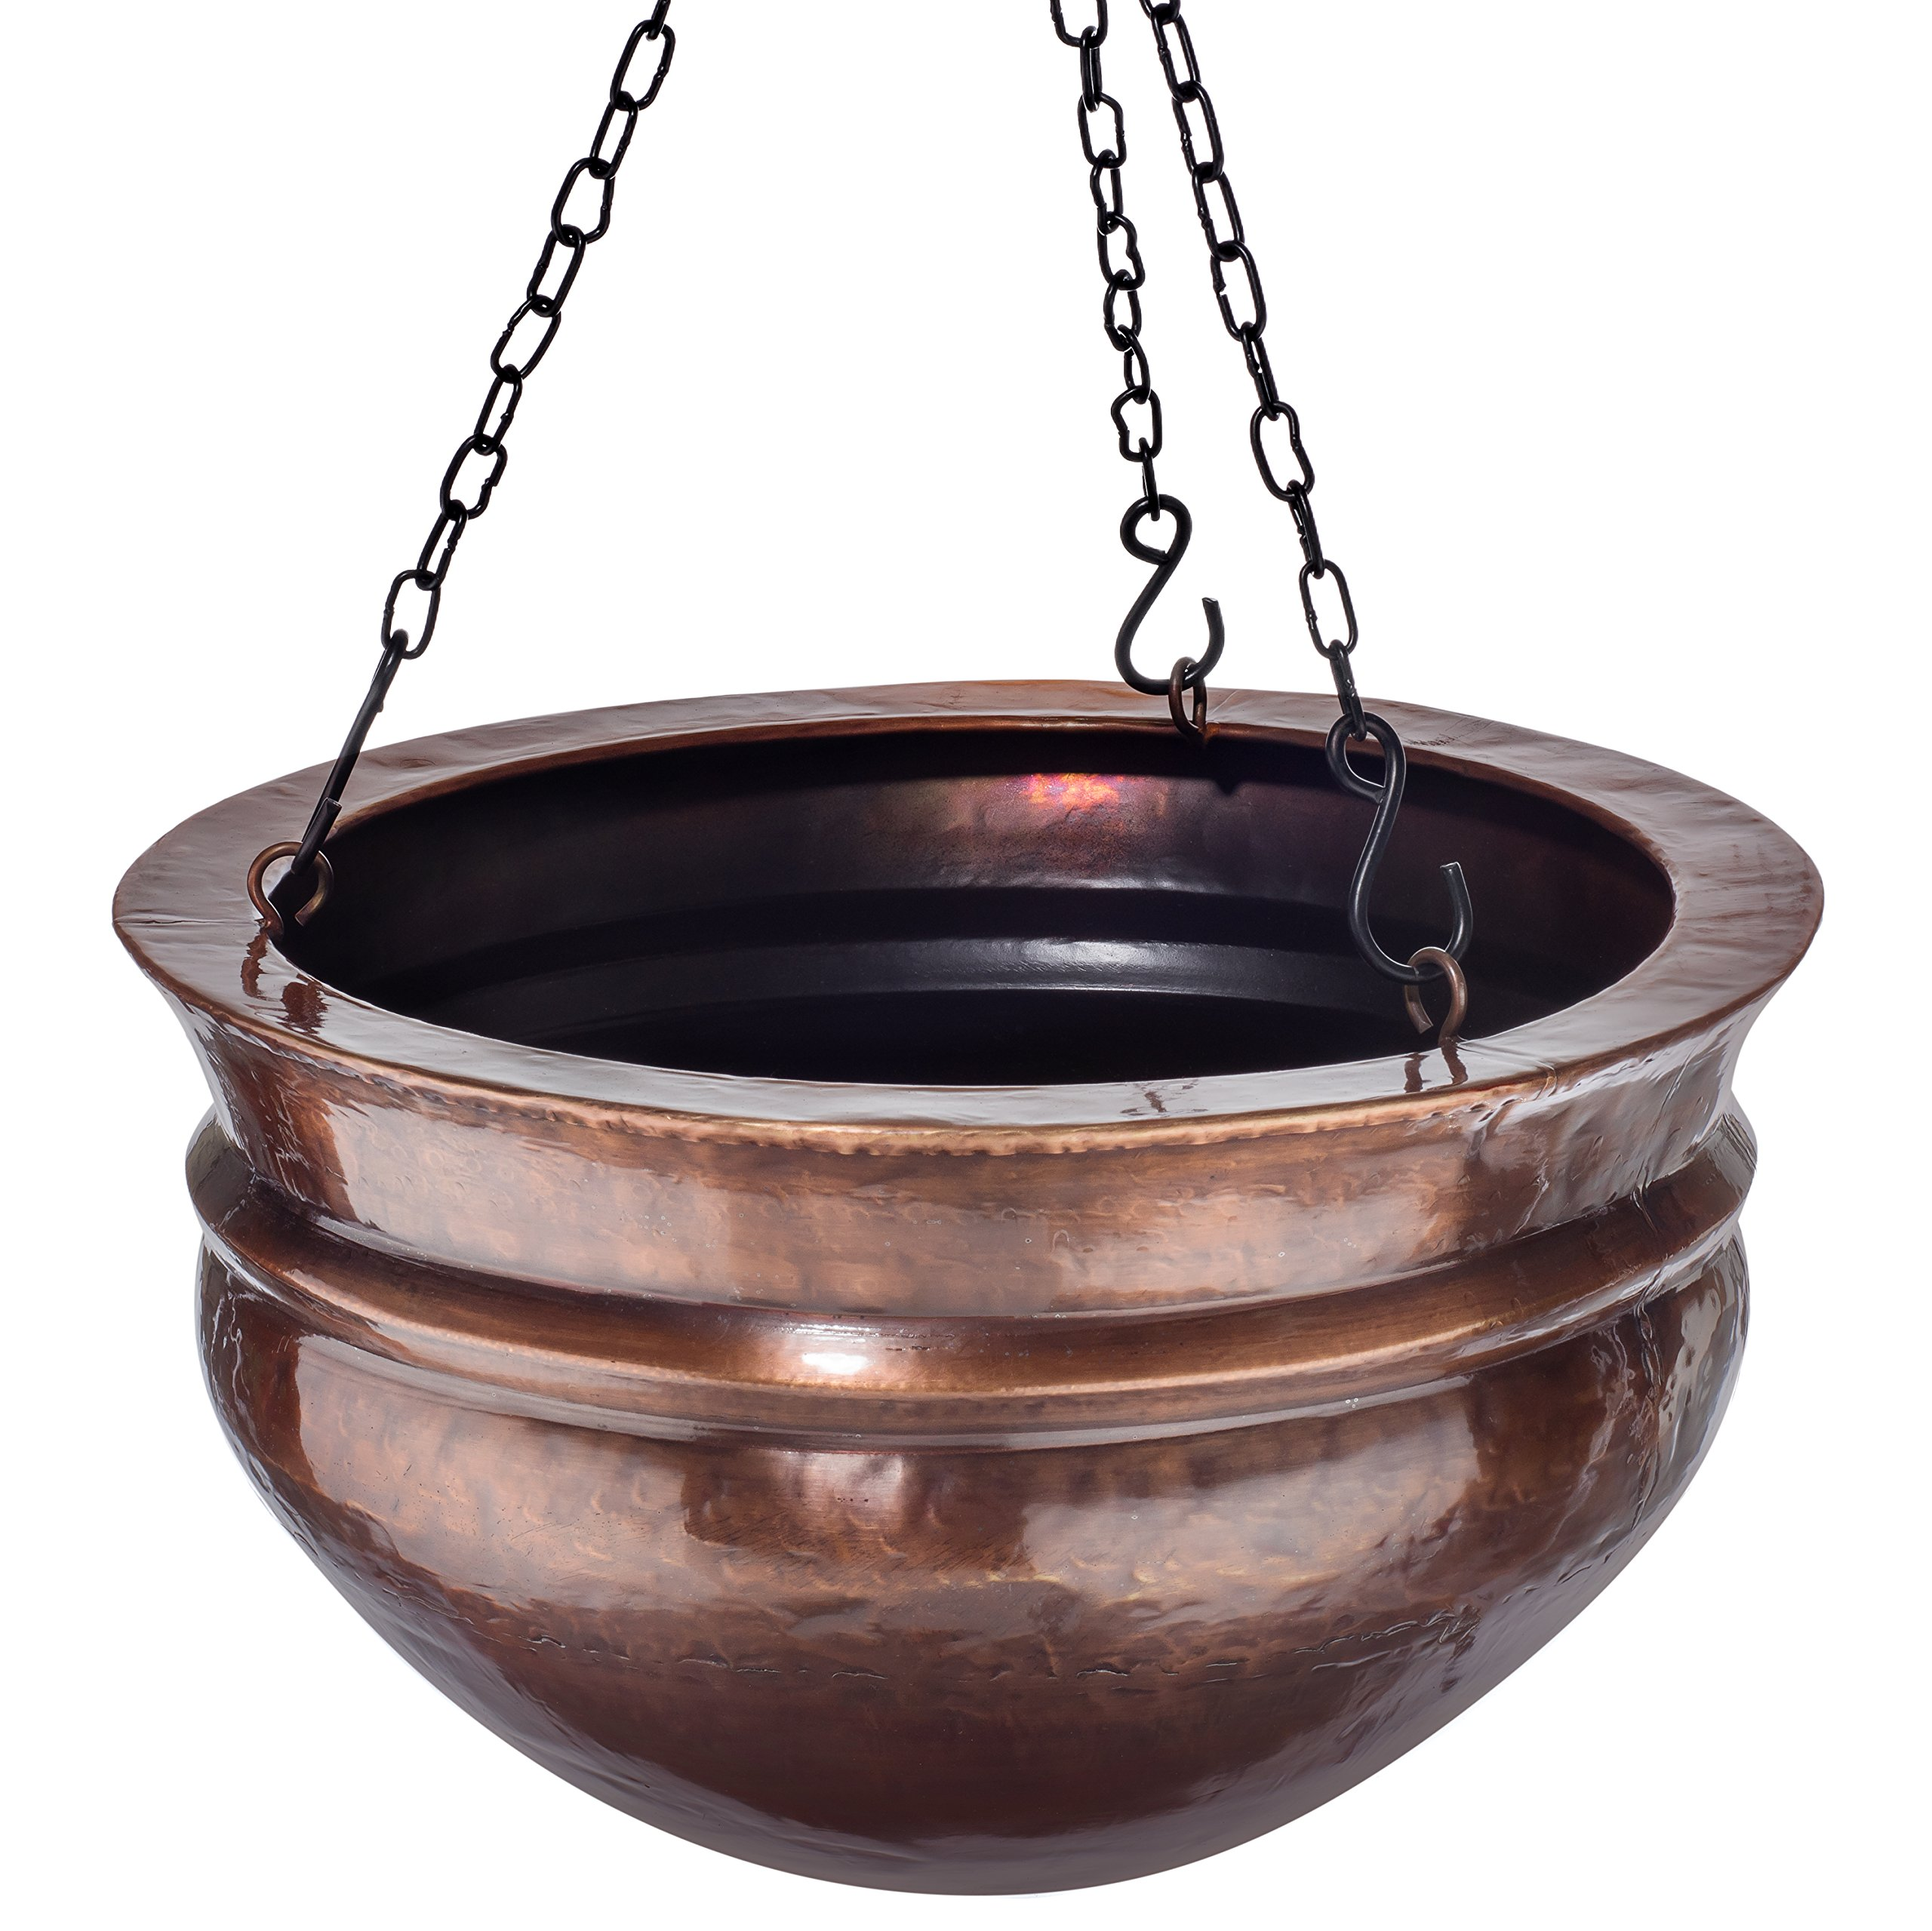 """H Potter Hanging Brass Planter with Antique Finish & Chain – Outdoor Small Plant Pot for Home Patio Deck Terrace Balcony Kitchen - 14"""" Diameter"""